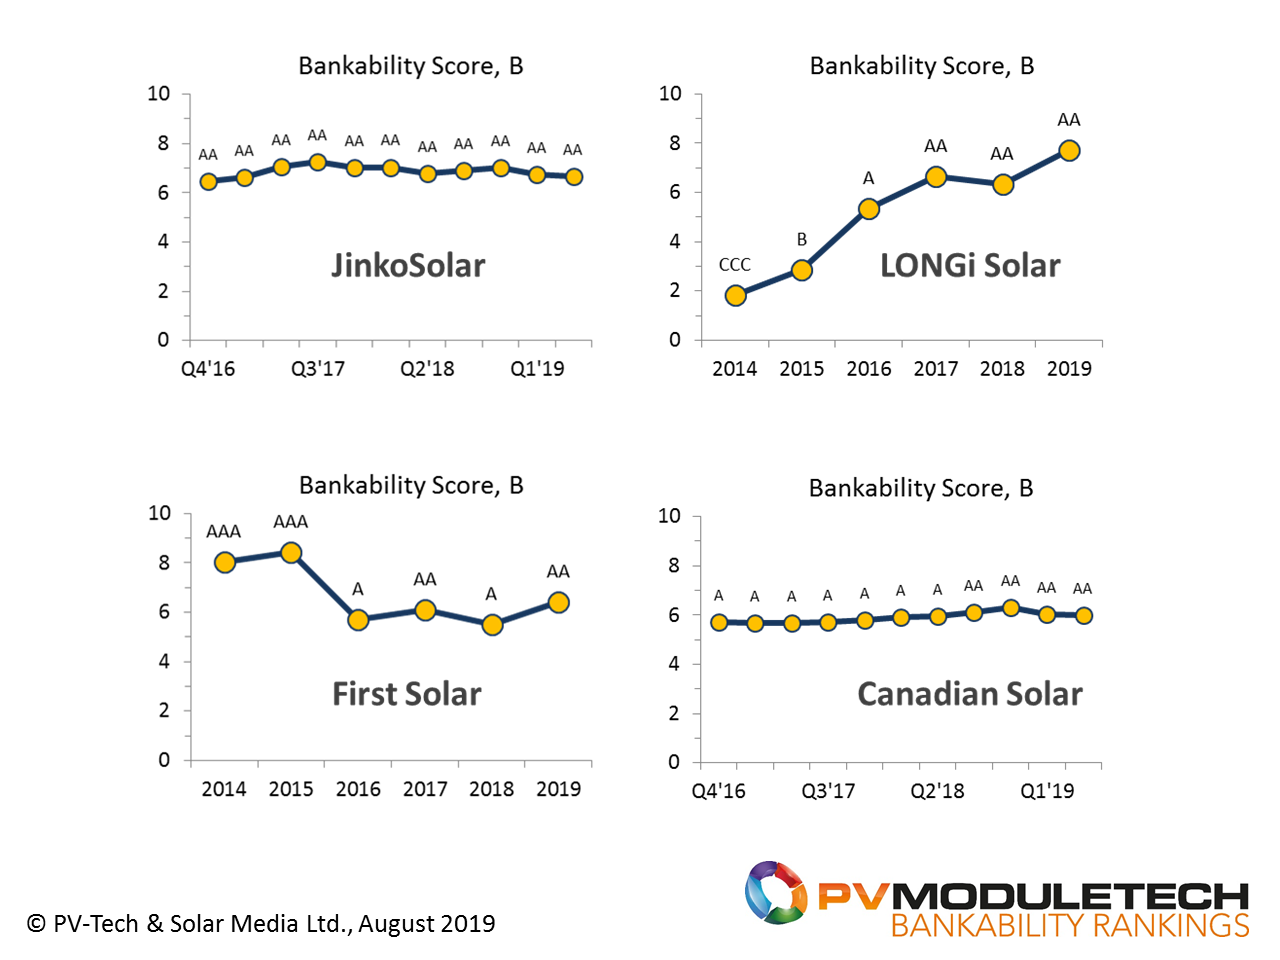 Year-end and quarterly trending for the four AA-Rated PV module suppliers to large-scale solar PV segments today, illustrating each company's status from a bankability standpoint.